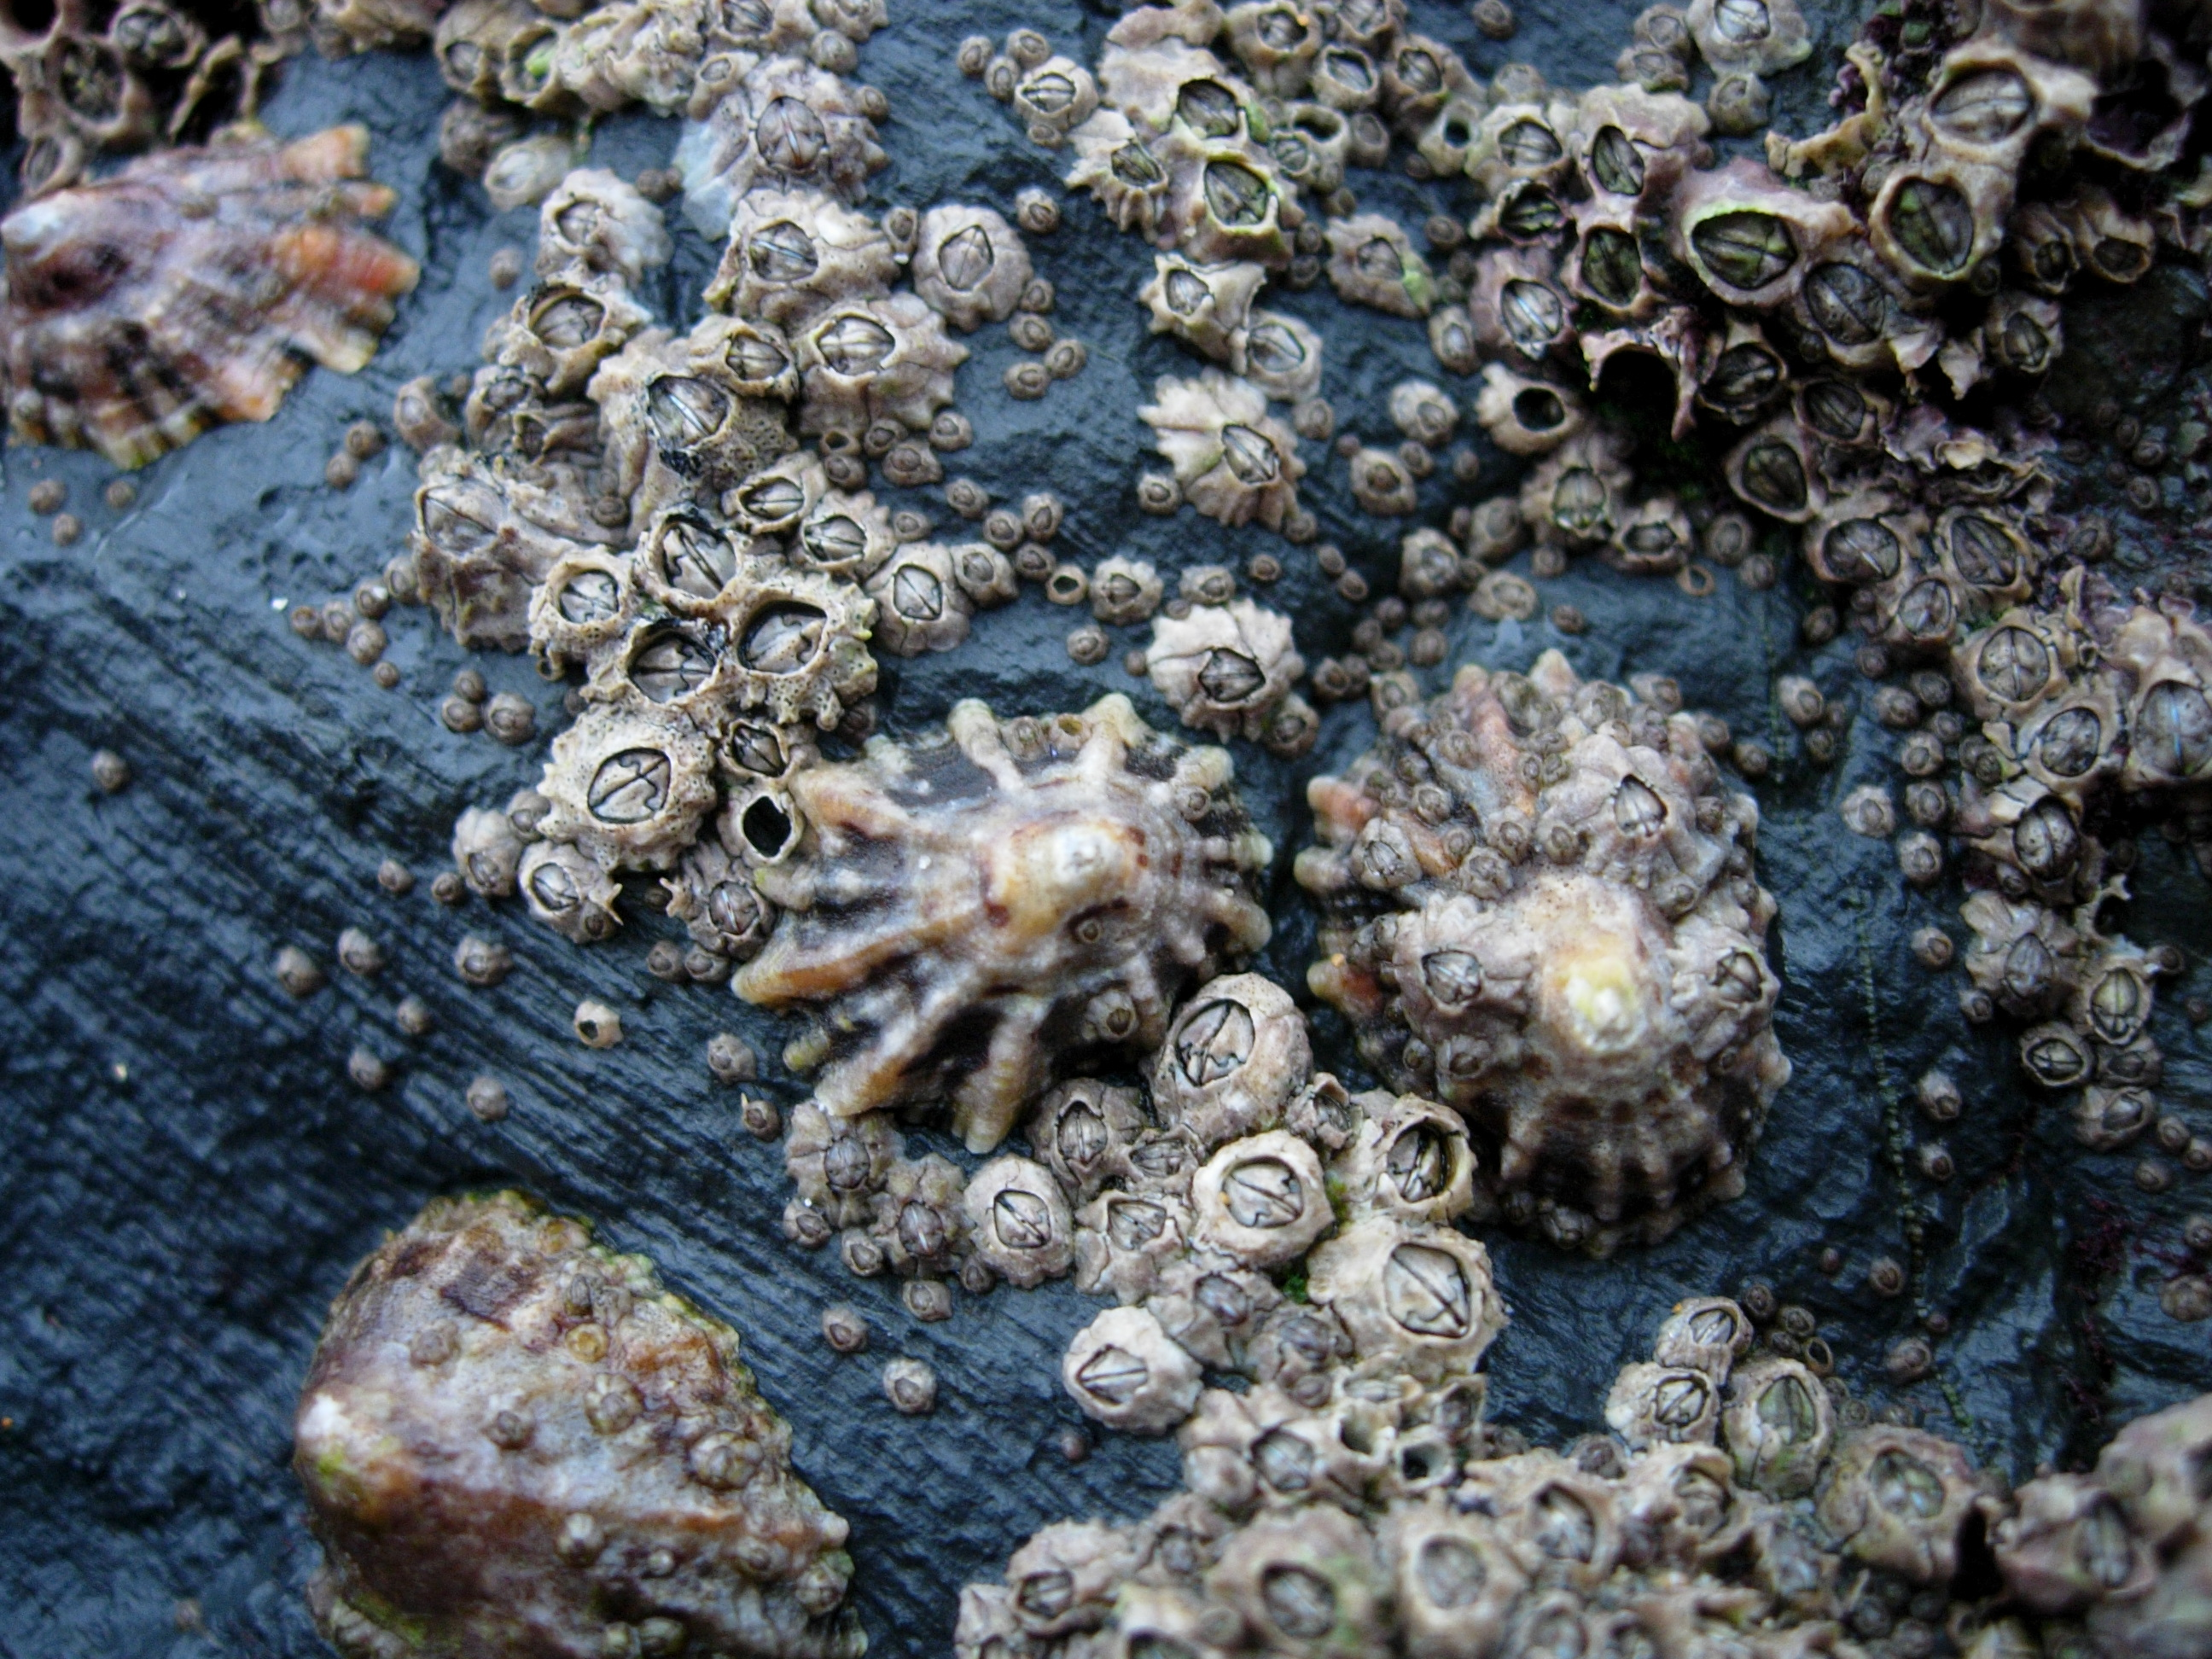 Barnacles (Chthamalus stellatus) and Limpets (...